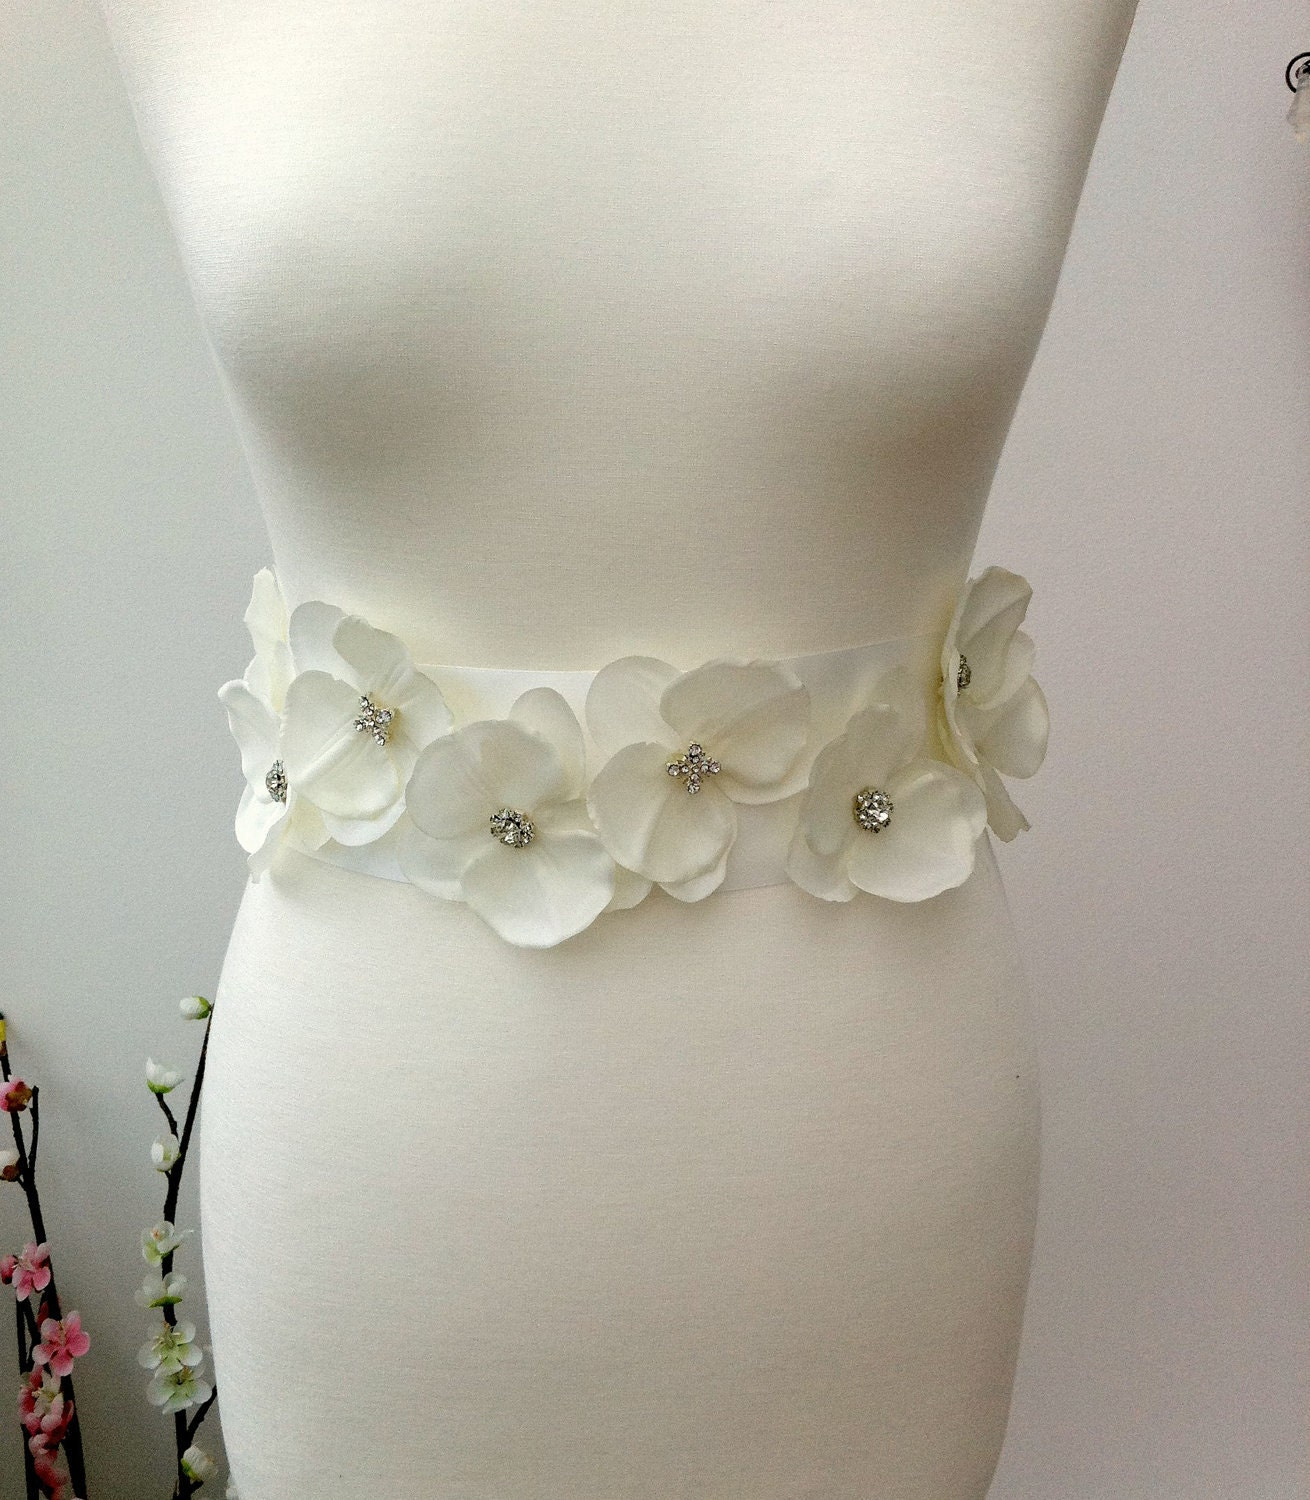 Items similar to Flower Sash Bridal Sash Bridal Flower